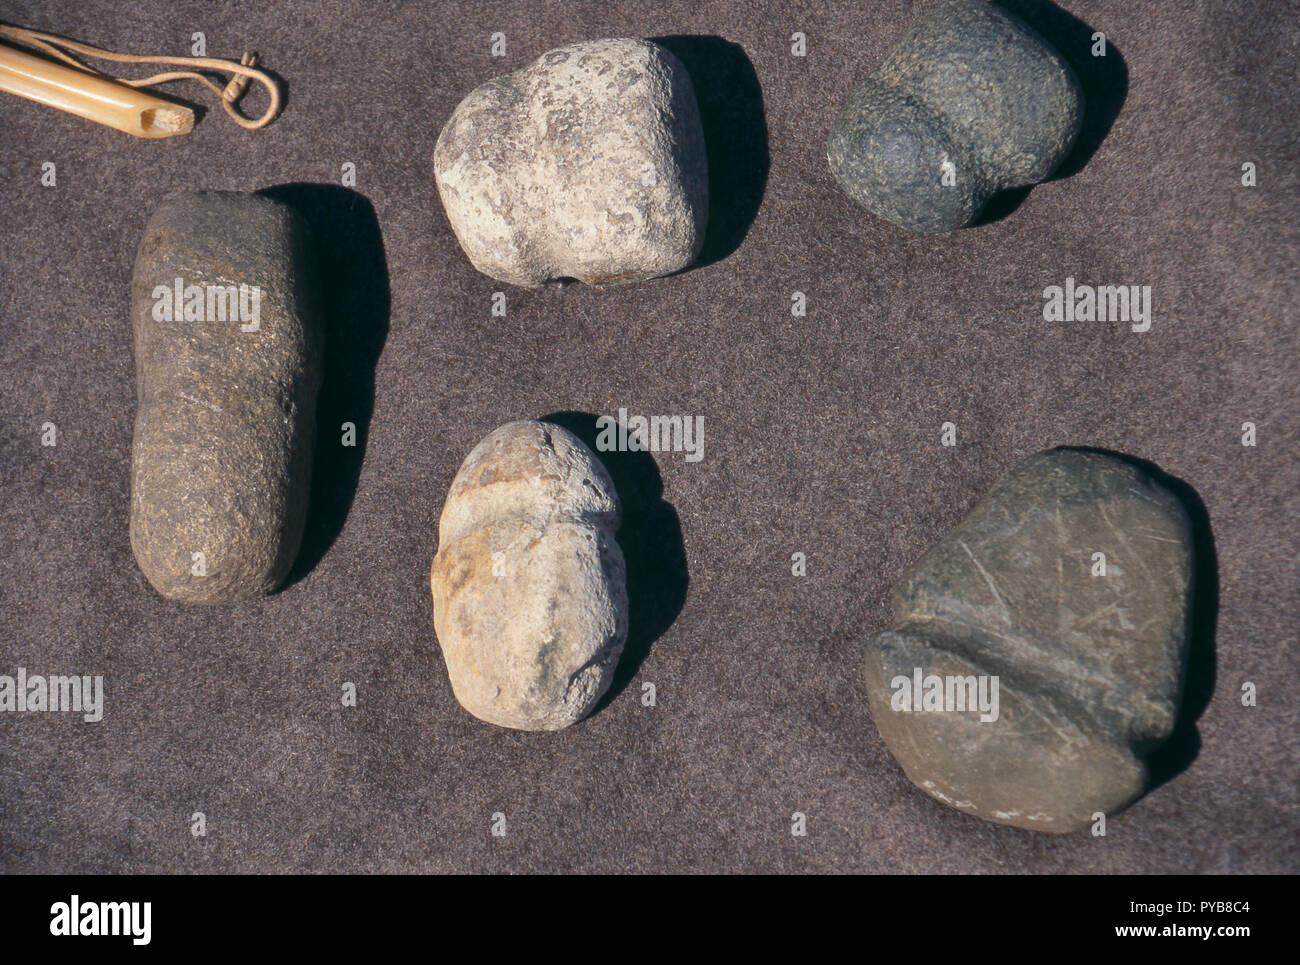 Native American stone tools, living history display at Lewis & Clark's Fort Mandan, North Dakota. Photograph - Stock Image